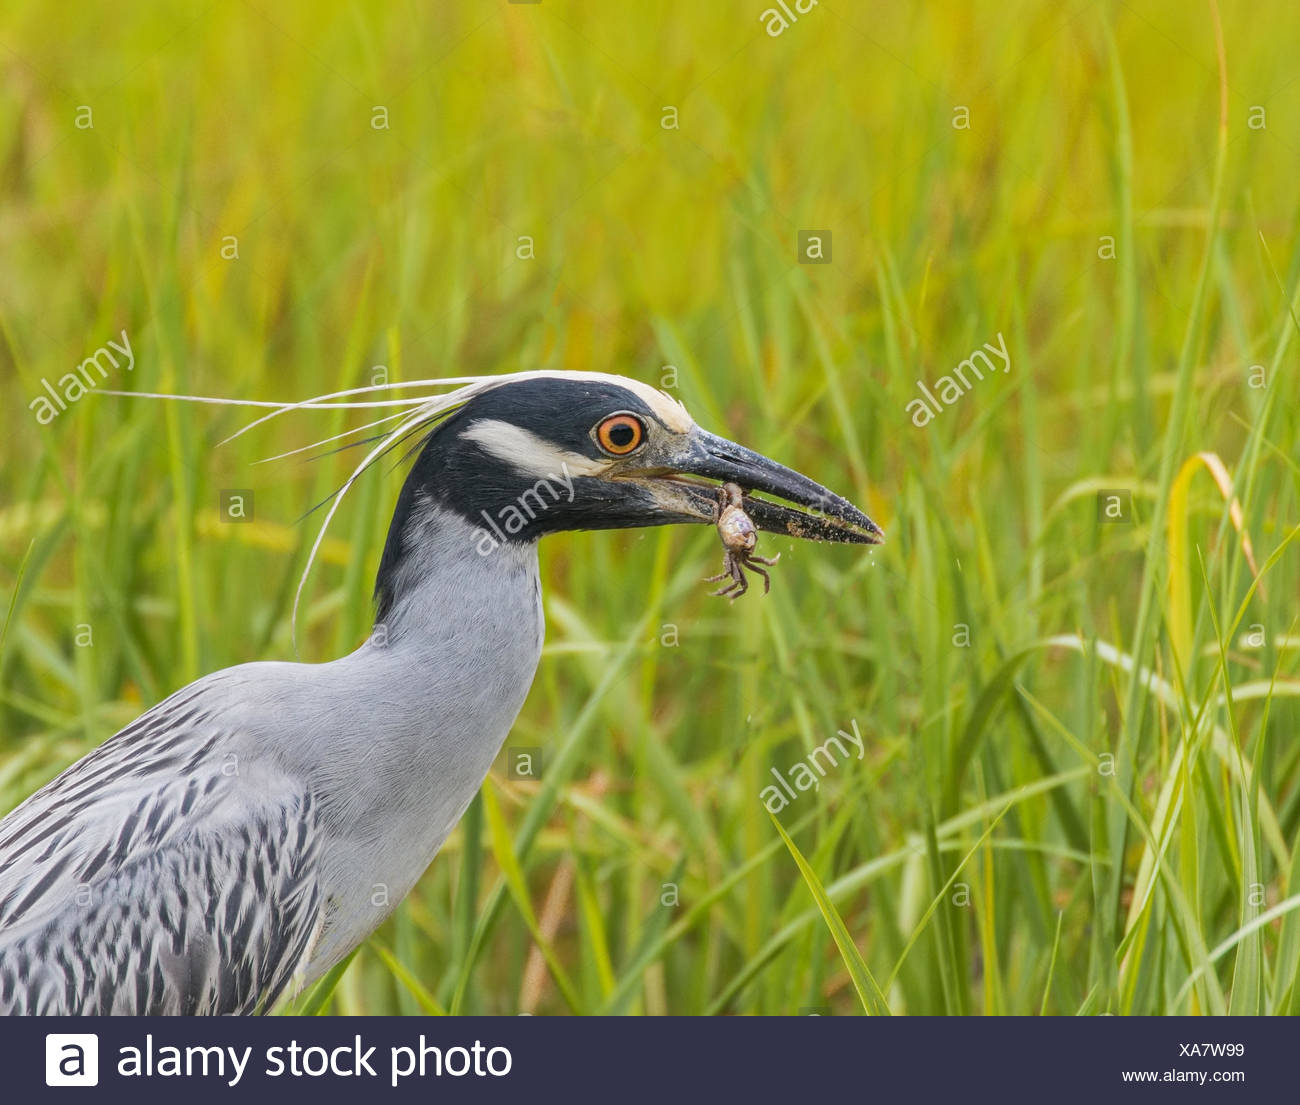 A yellow crowned night heron with a fiddler crab in its beak. - Stock Image